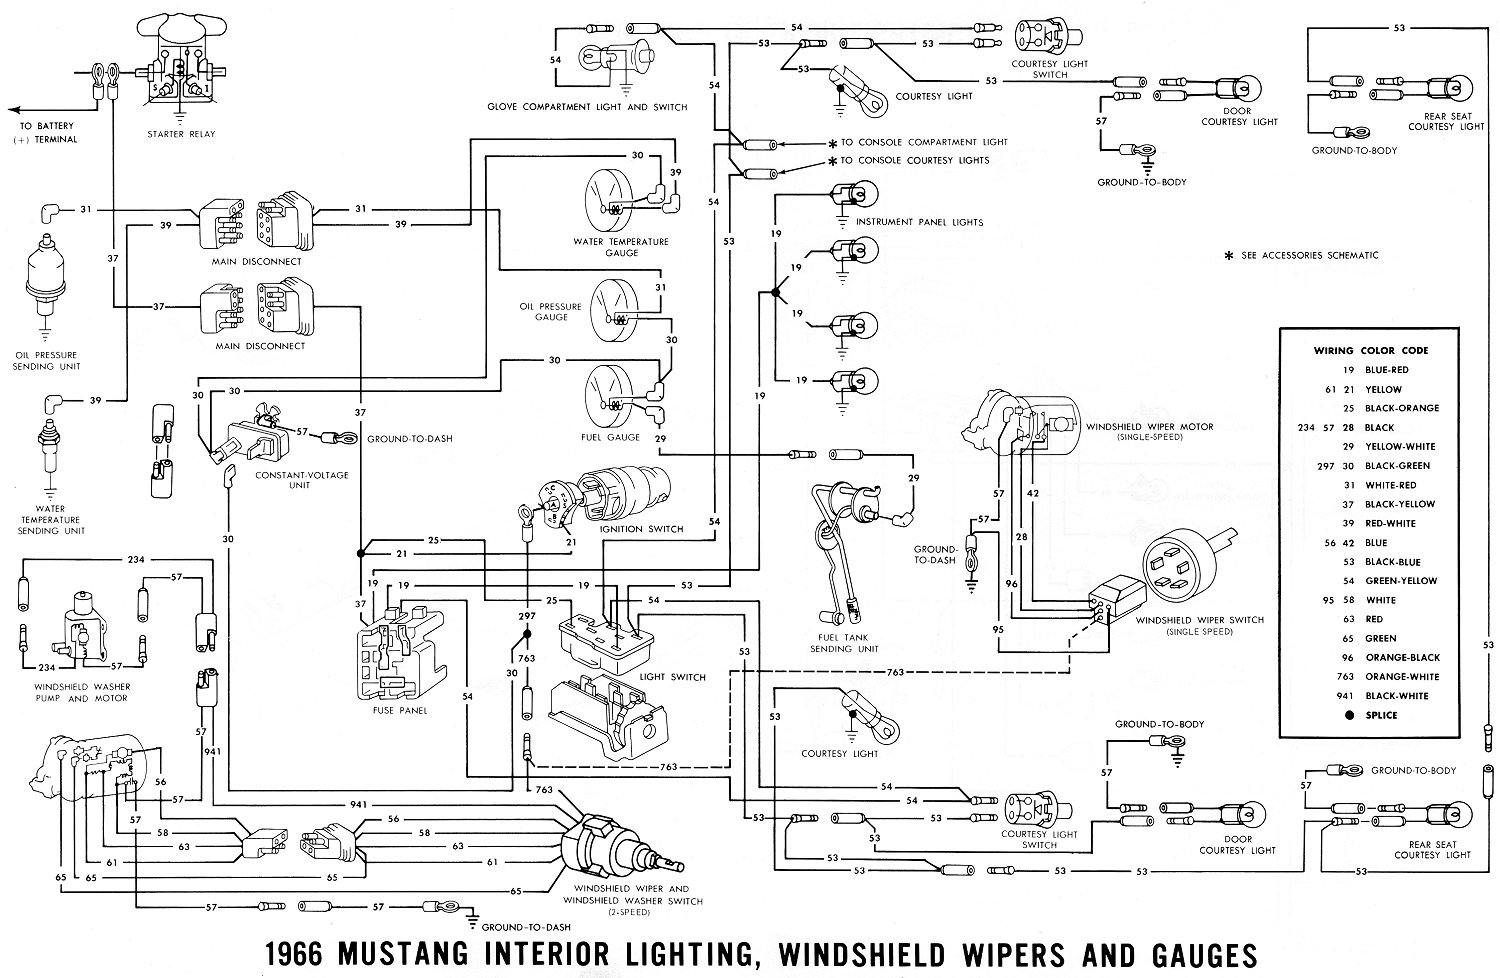 66inter1 1966 mustang wiring diagrams average joe restoration 1969 mustang dash wiring diagram at fashall.co